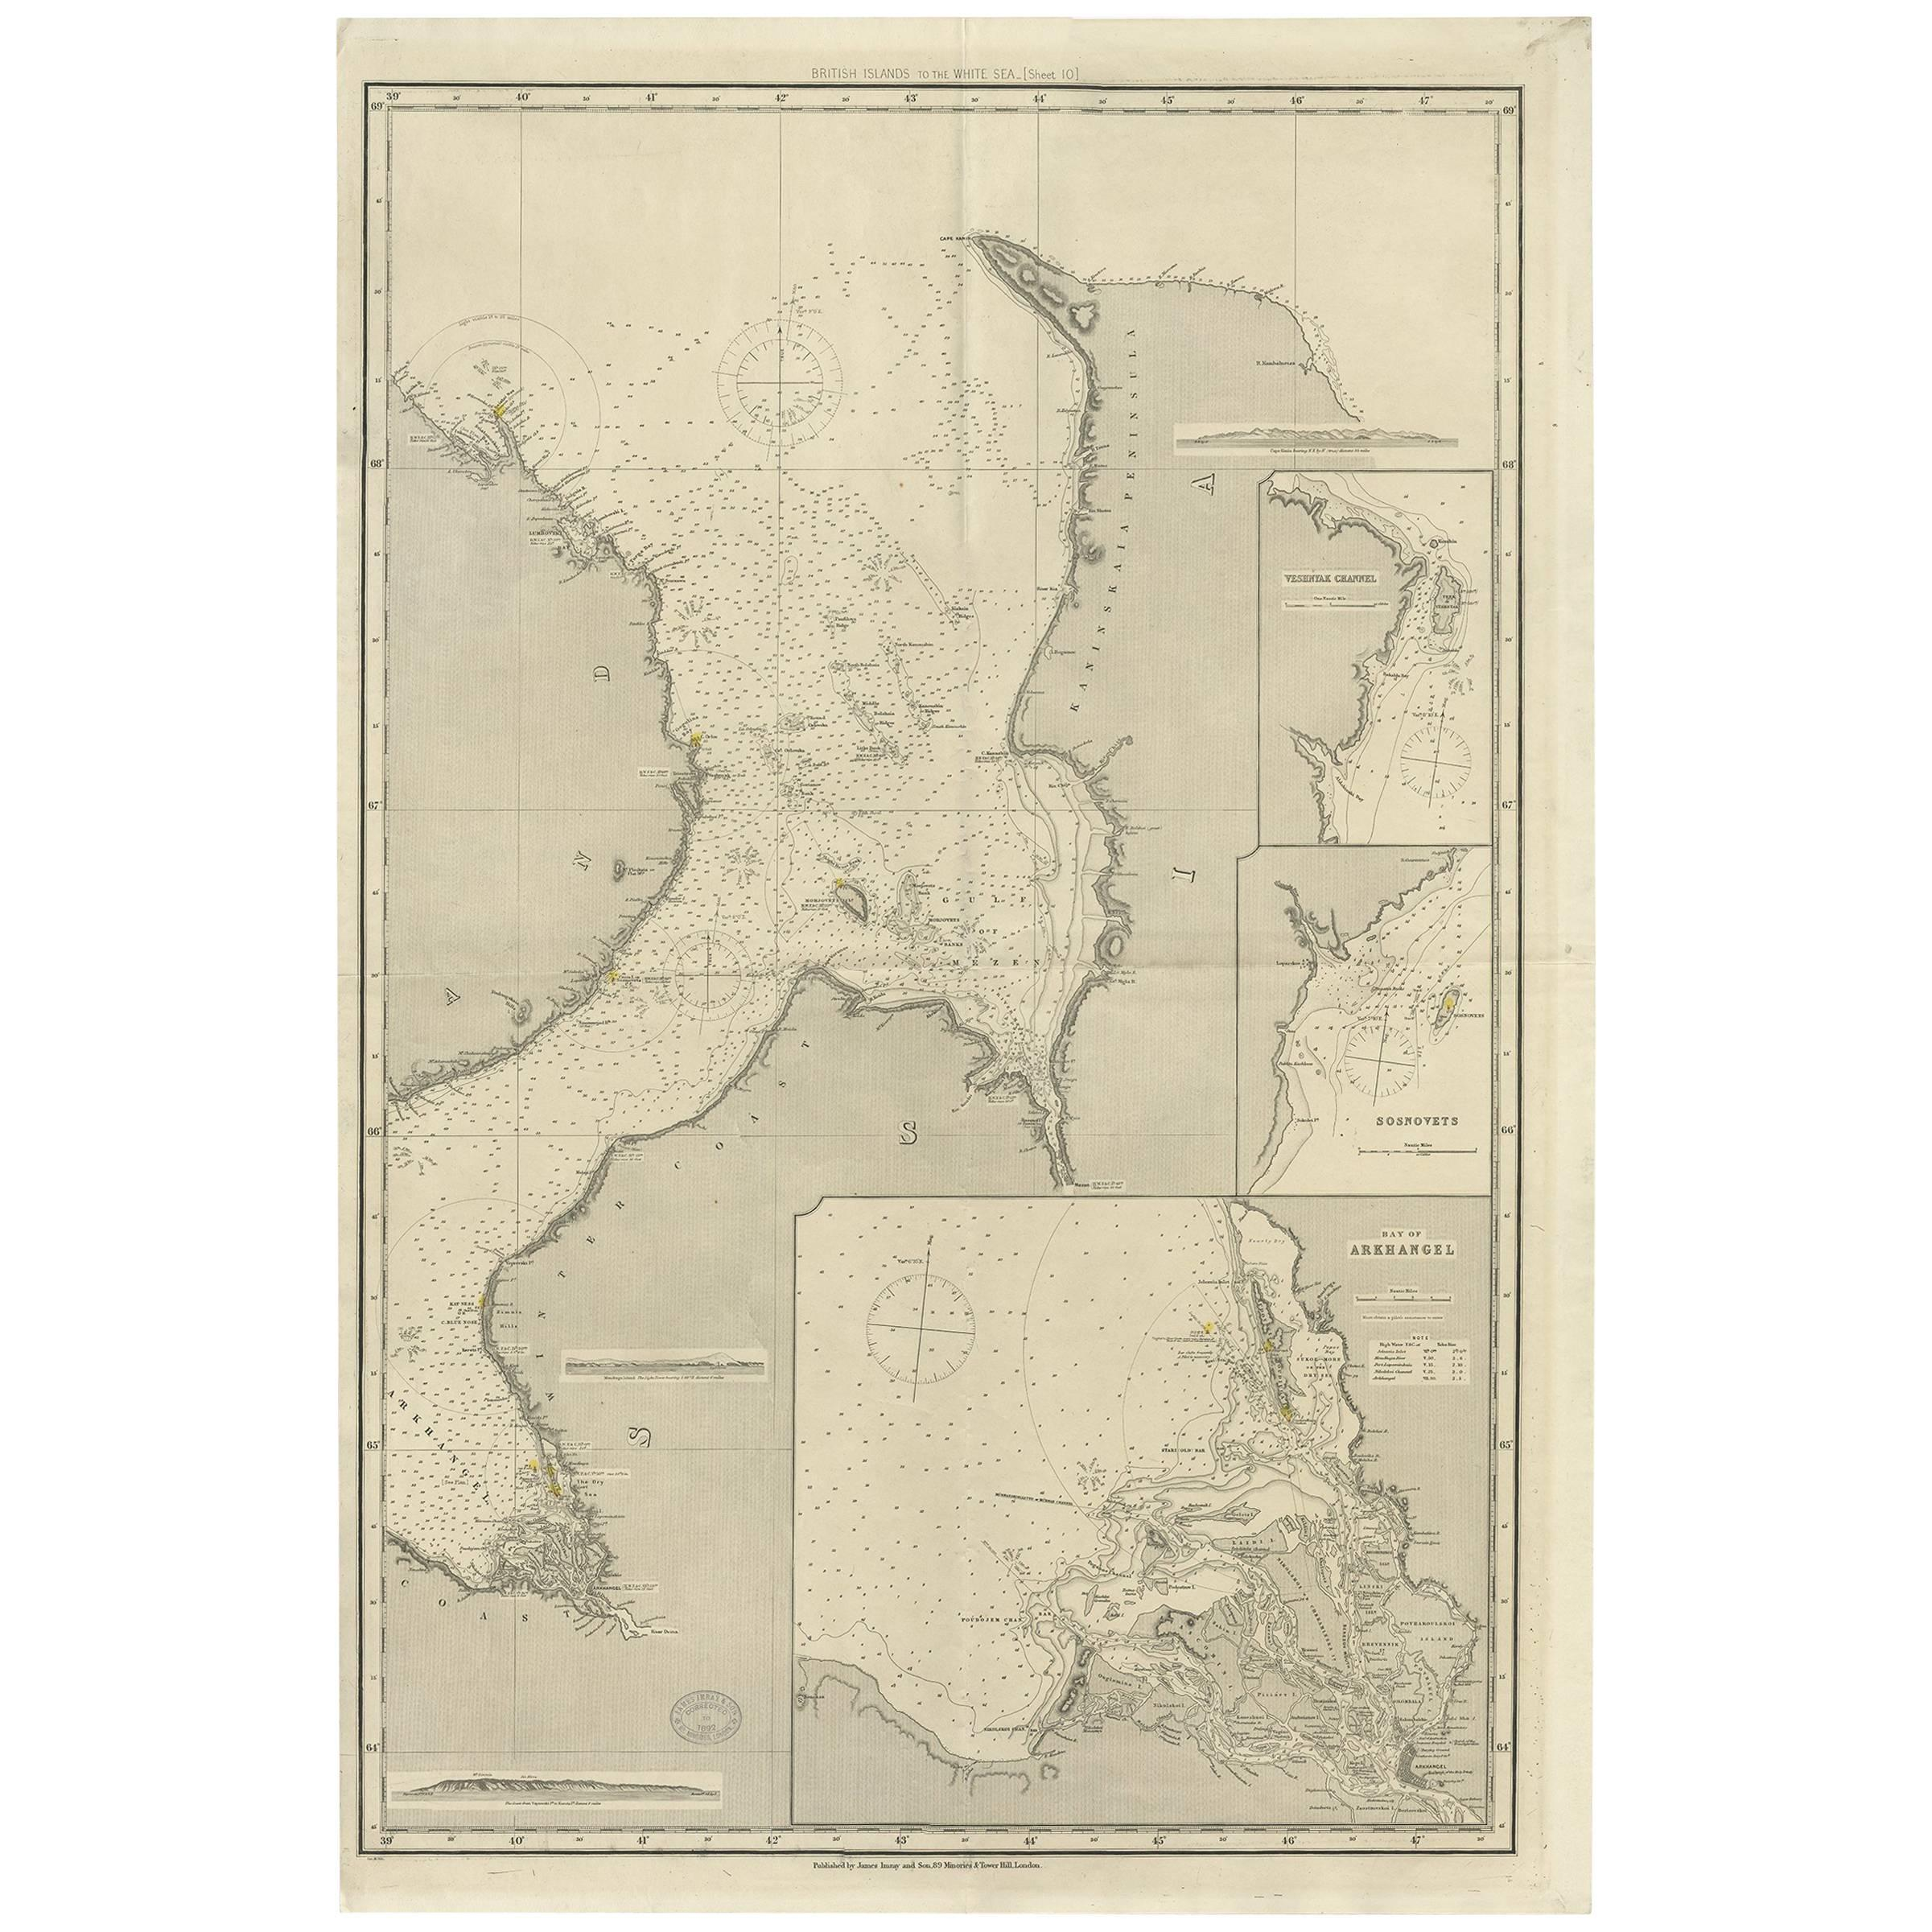 Antique Map of the British Islands to the White Sea by J. Imray